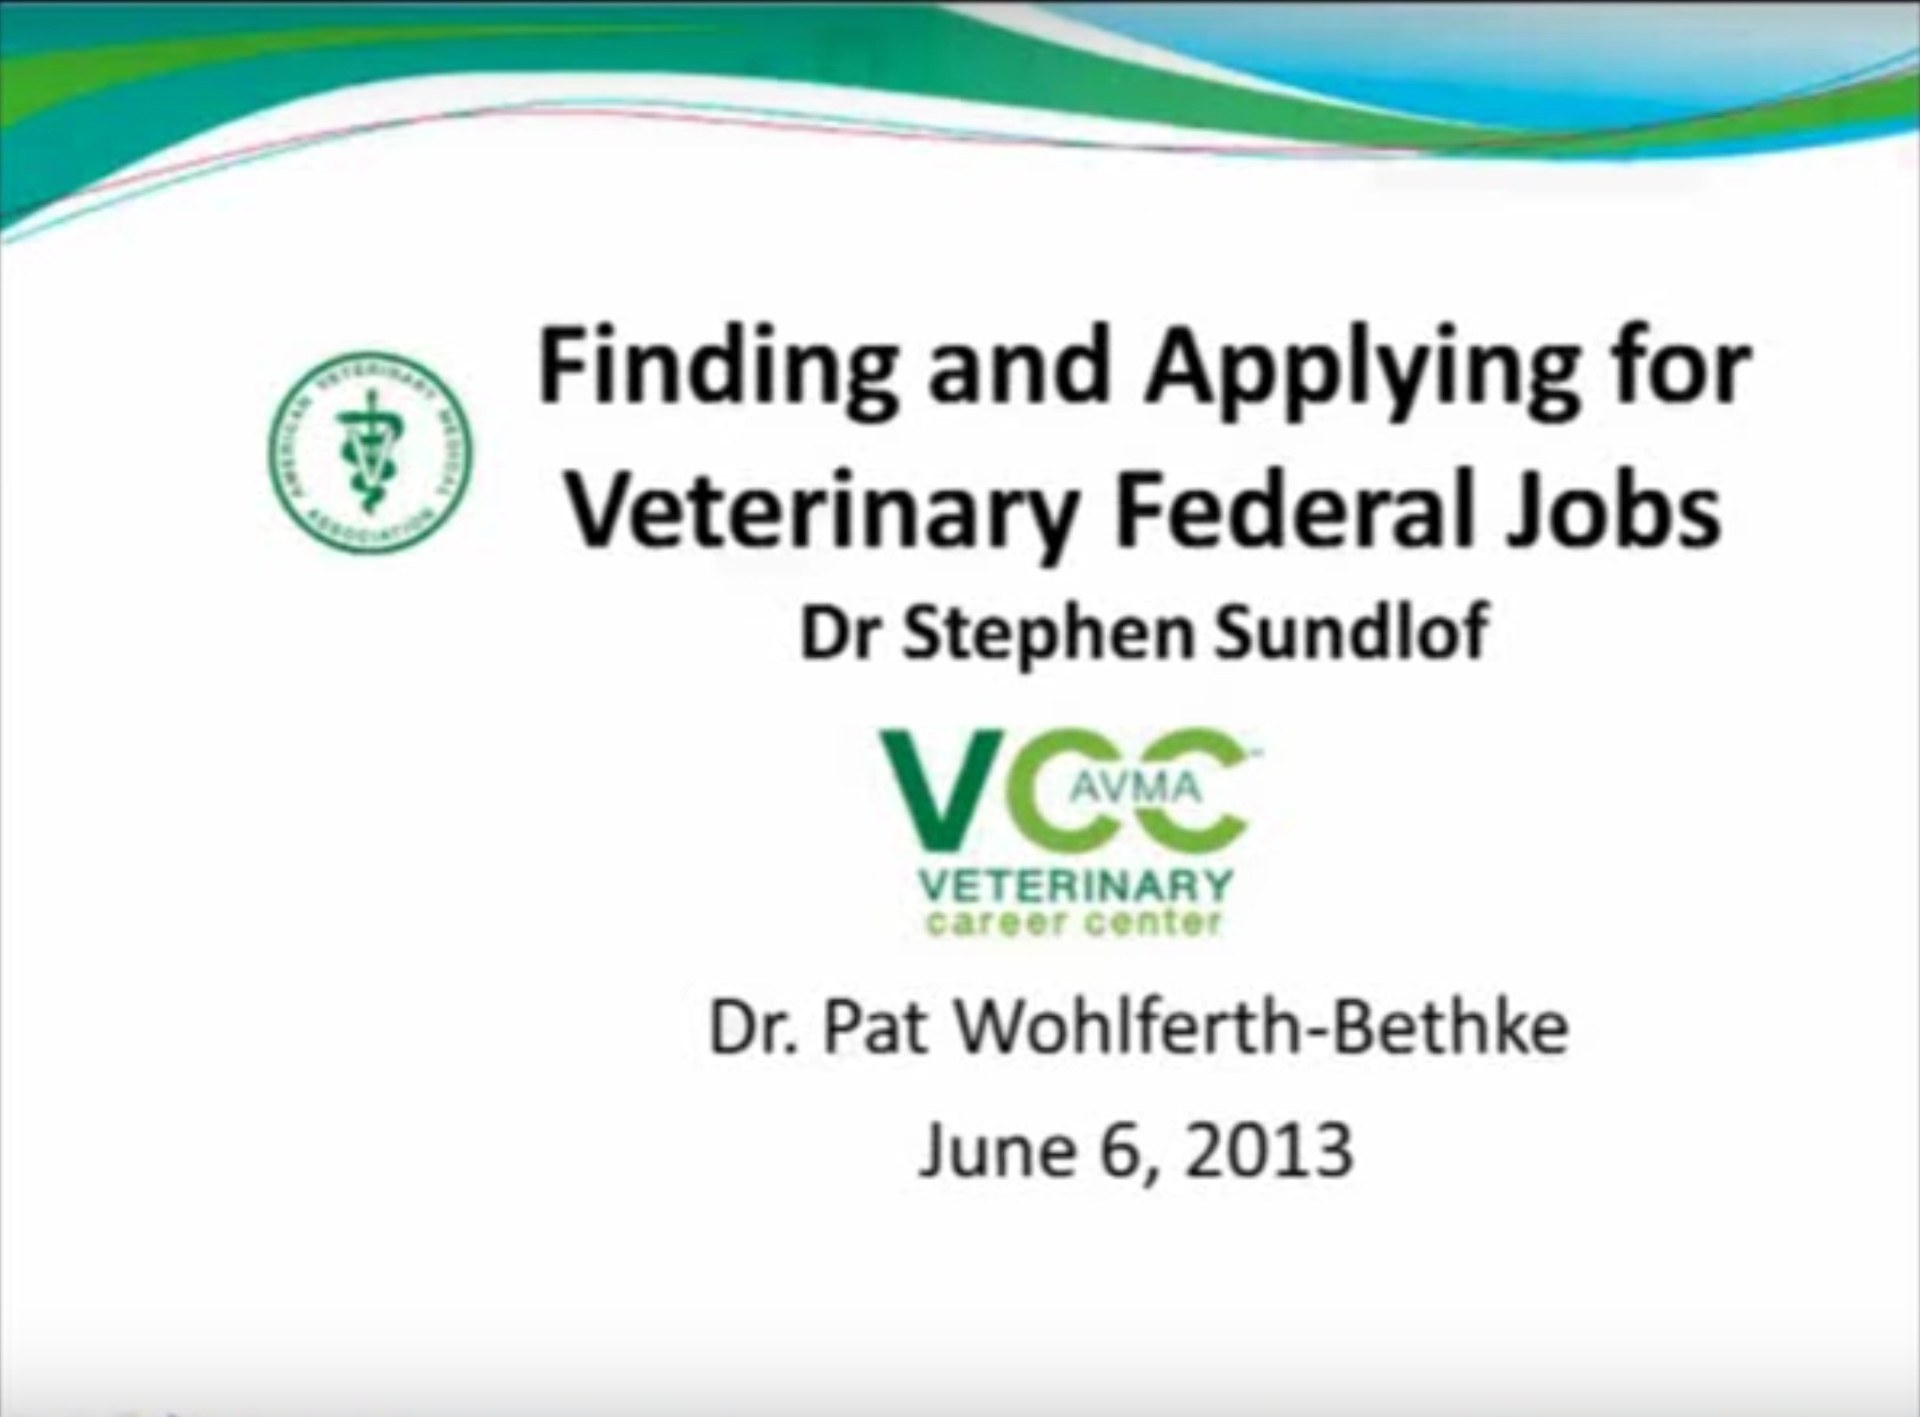 Finding and Applying for Federal Veterinary Jobs